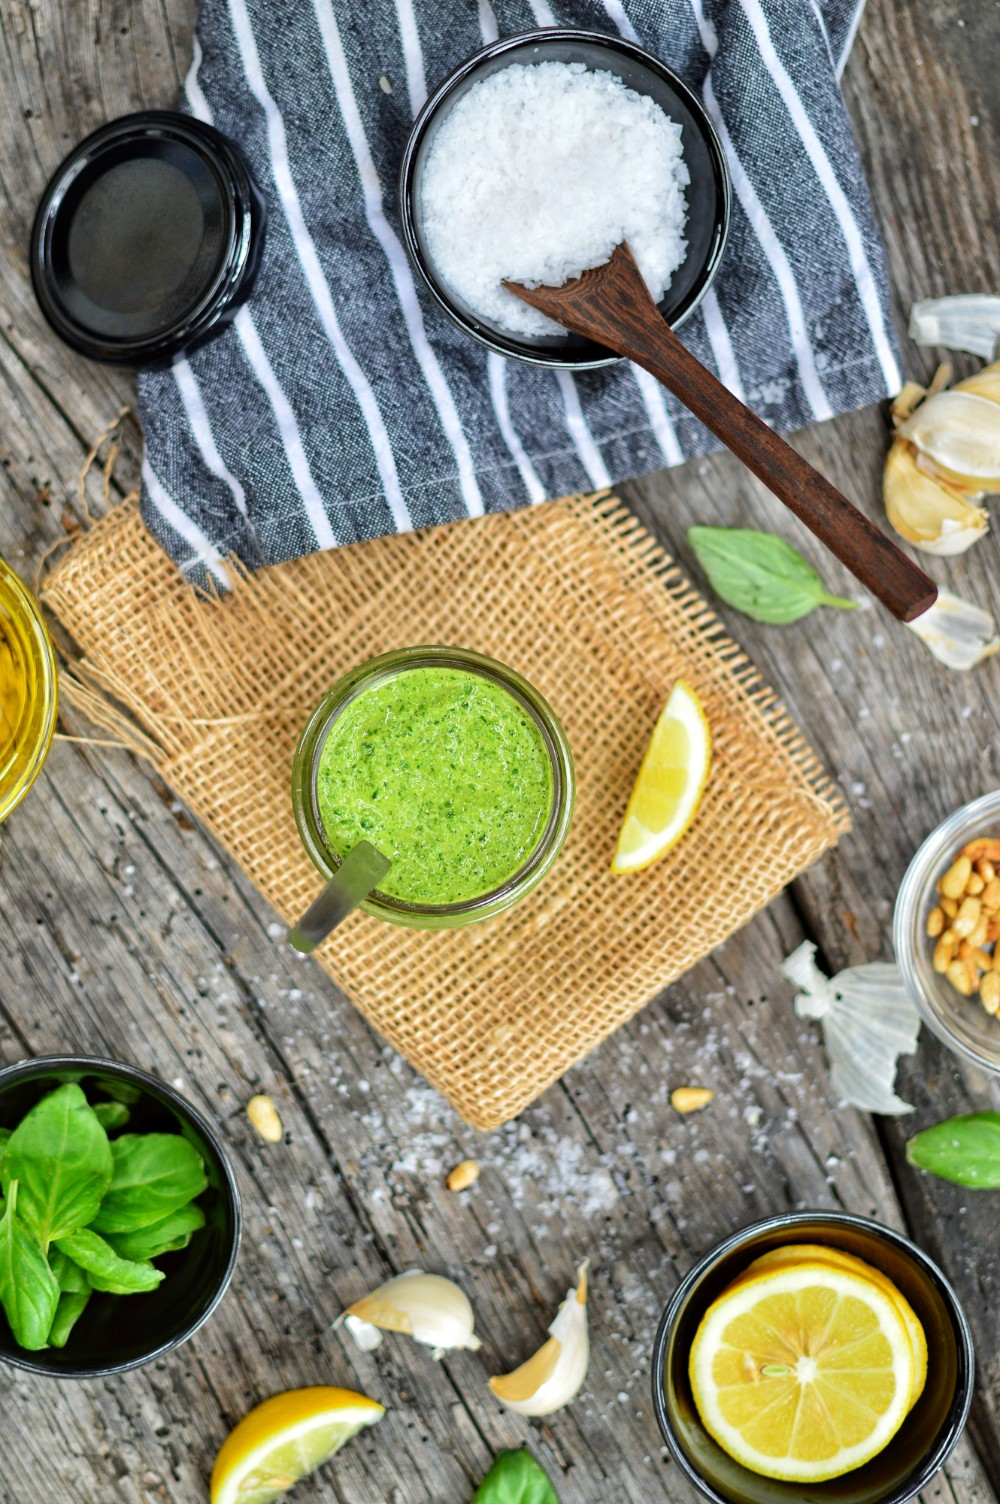 Easy Vegan Pesto | Healthy Sauce |WorldofVegan.com | #pesto #vegan pesto #basil #spread #sauce #healthy